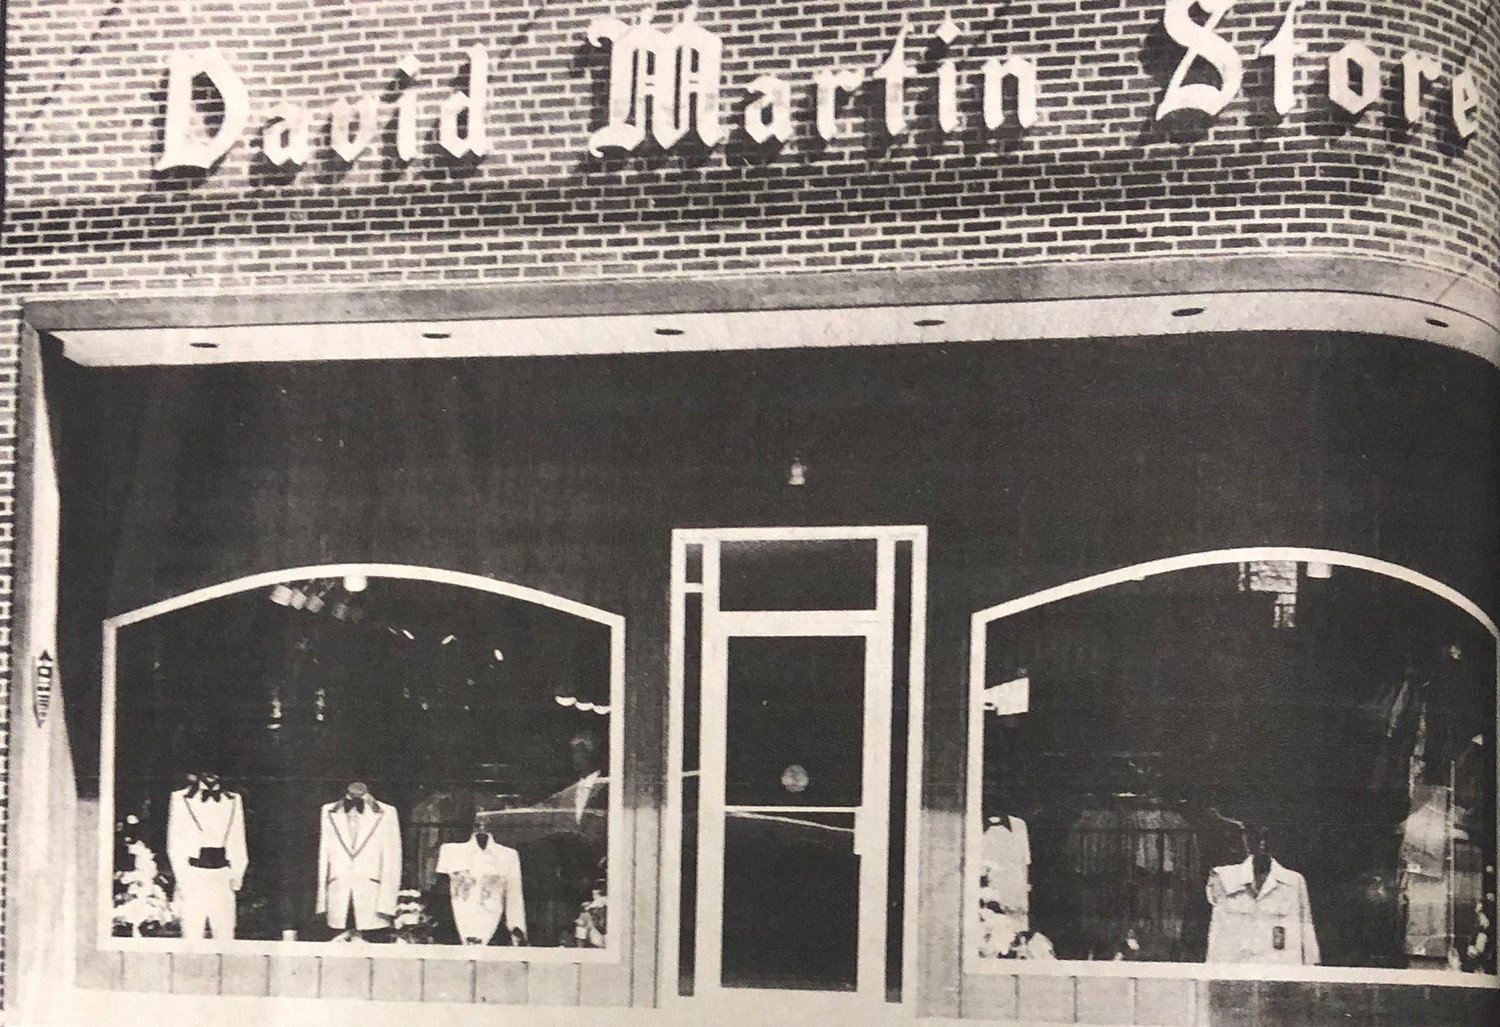 This photo accompanied the ad for the new David Martin Store at 20 S. Union St. in downtown Middletown. The building is now the home of the Press & Journal.